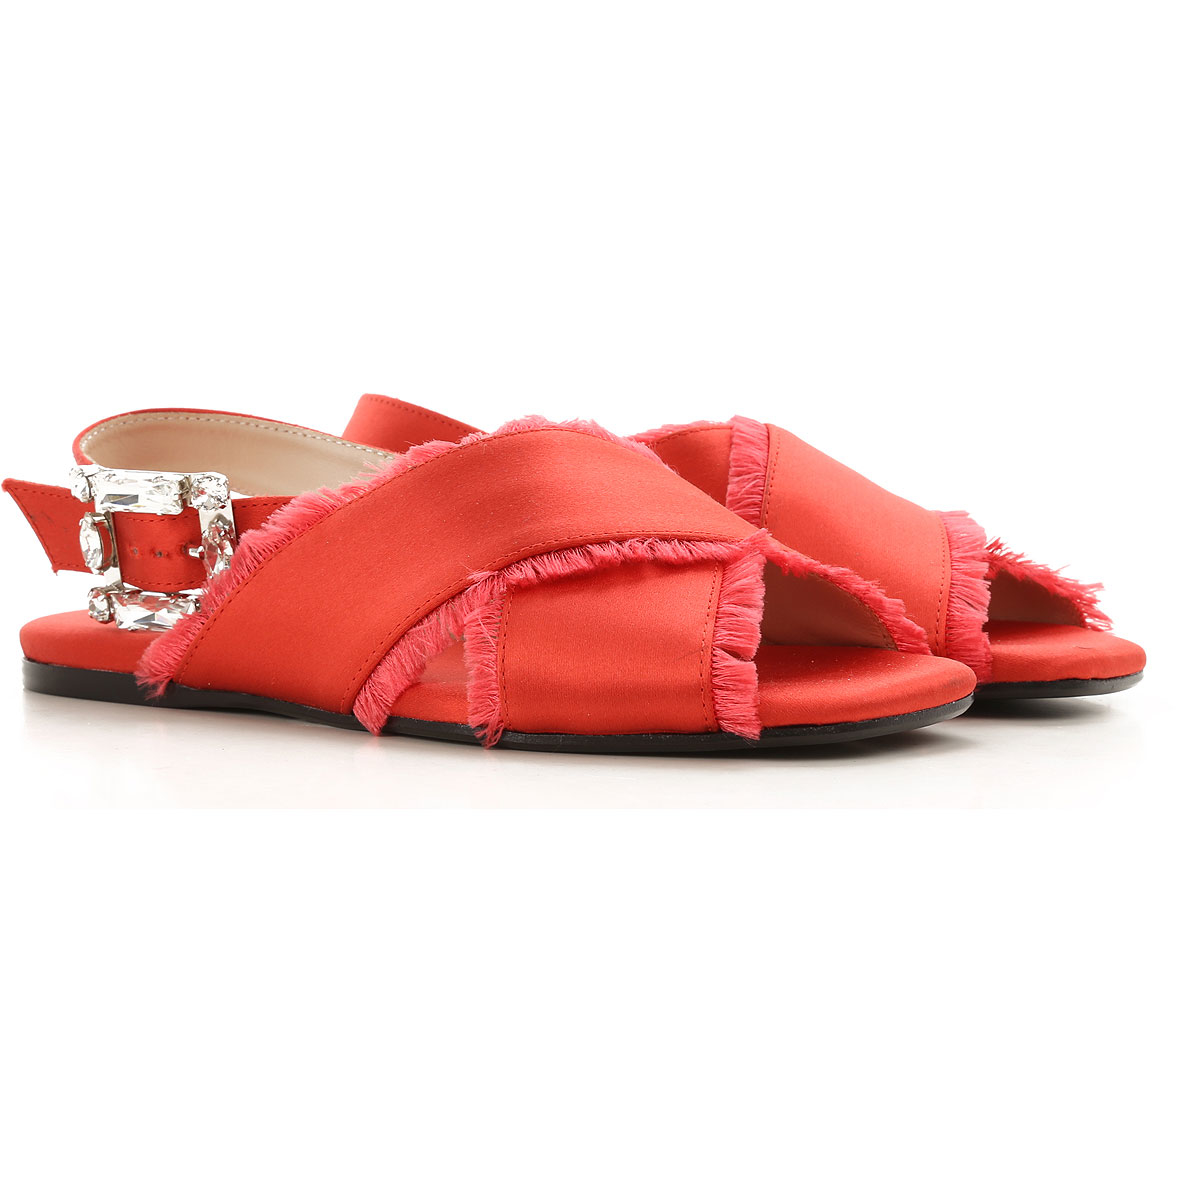 Anna Baiguera Womens Shoes On Sale in Outlet Coral UK - GOOFASH